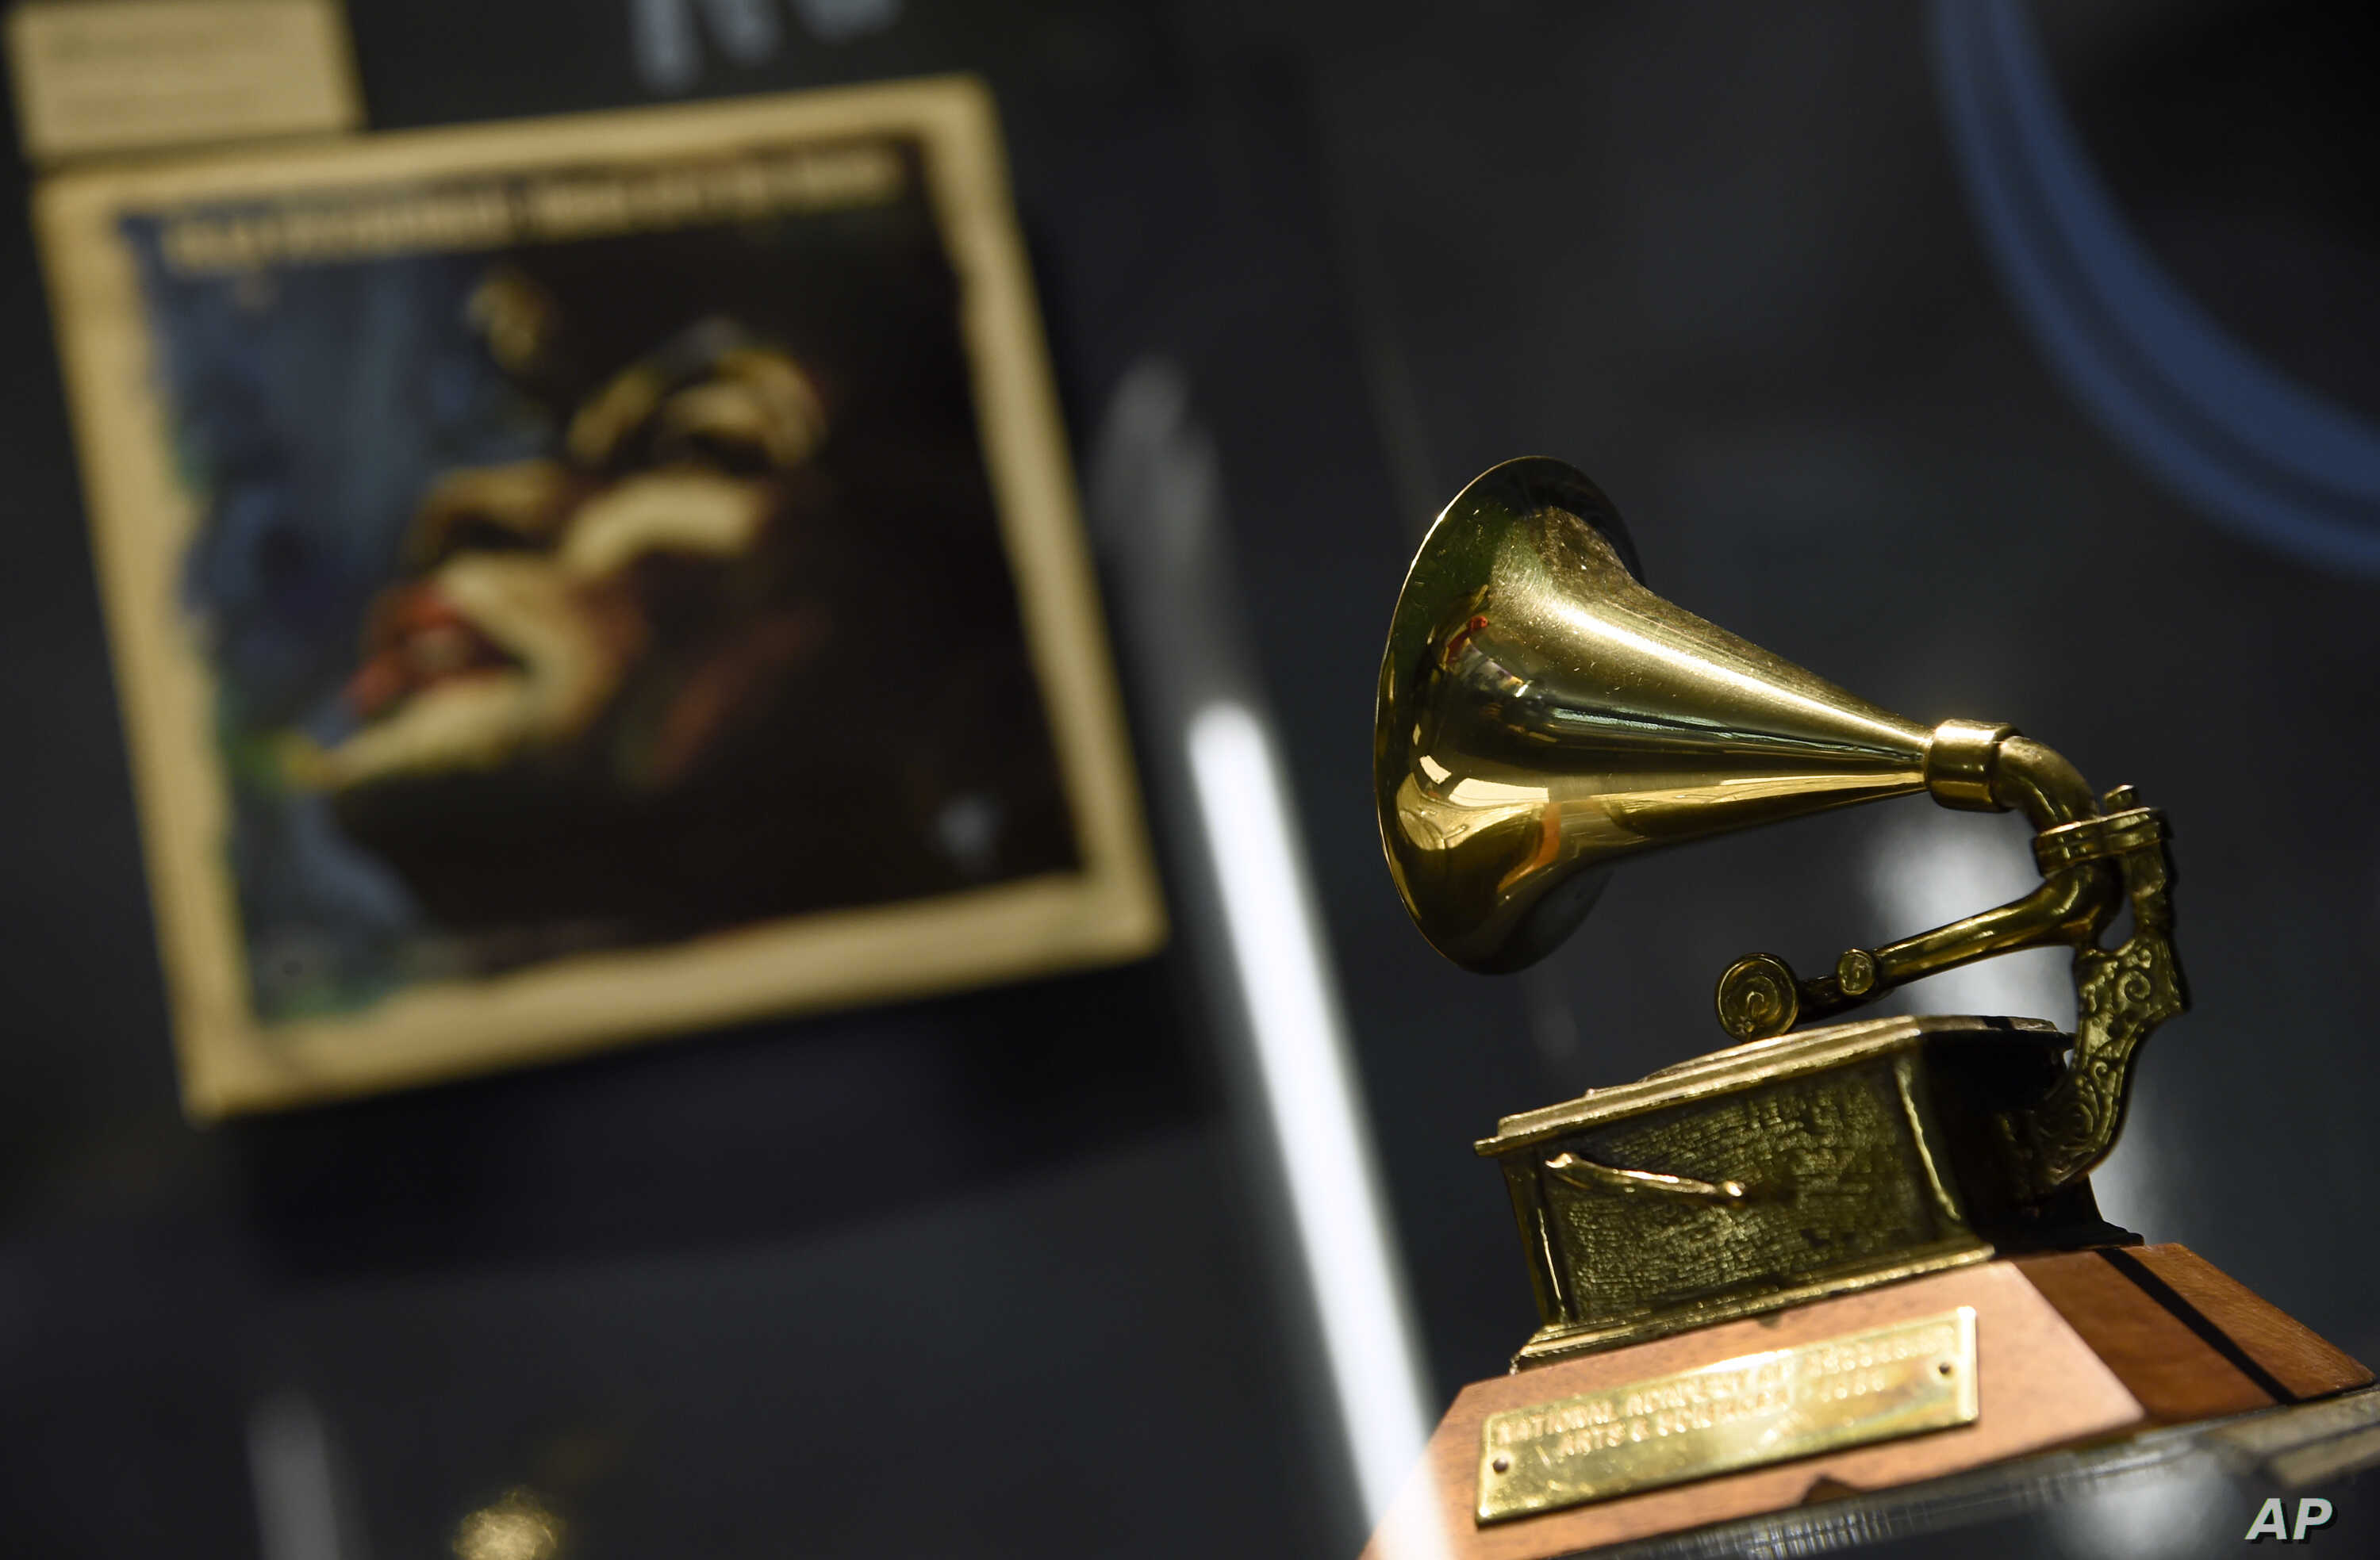 """Ella Fitzgerald's Grammy for best female vocal performance, awarded in 1958, is displayed at a sneak preview of """"Ella at 100: Celebrating the Artistry of Ella Fitzgerald"""" at The Grammy Museum at L.A. Live on Monday, April 24, 2017, in Los Angeles."""